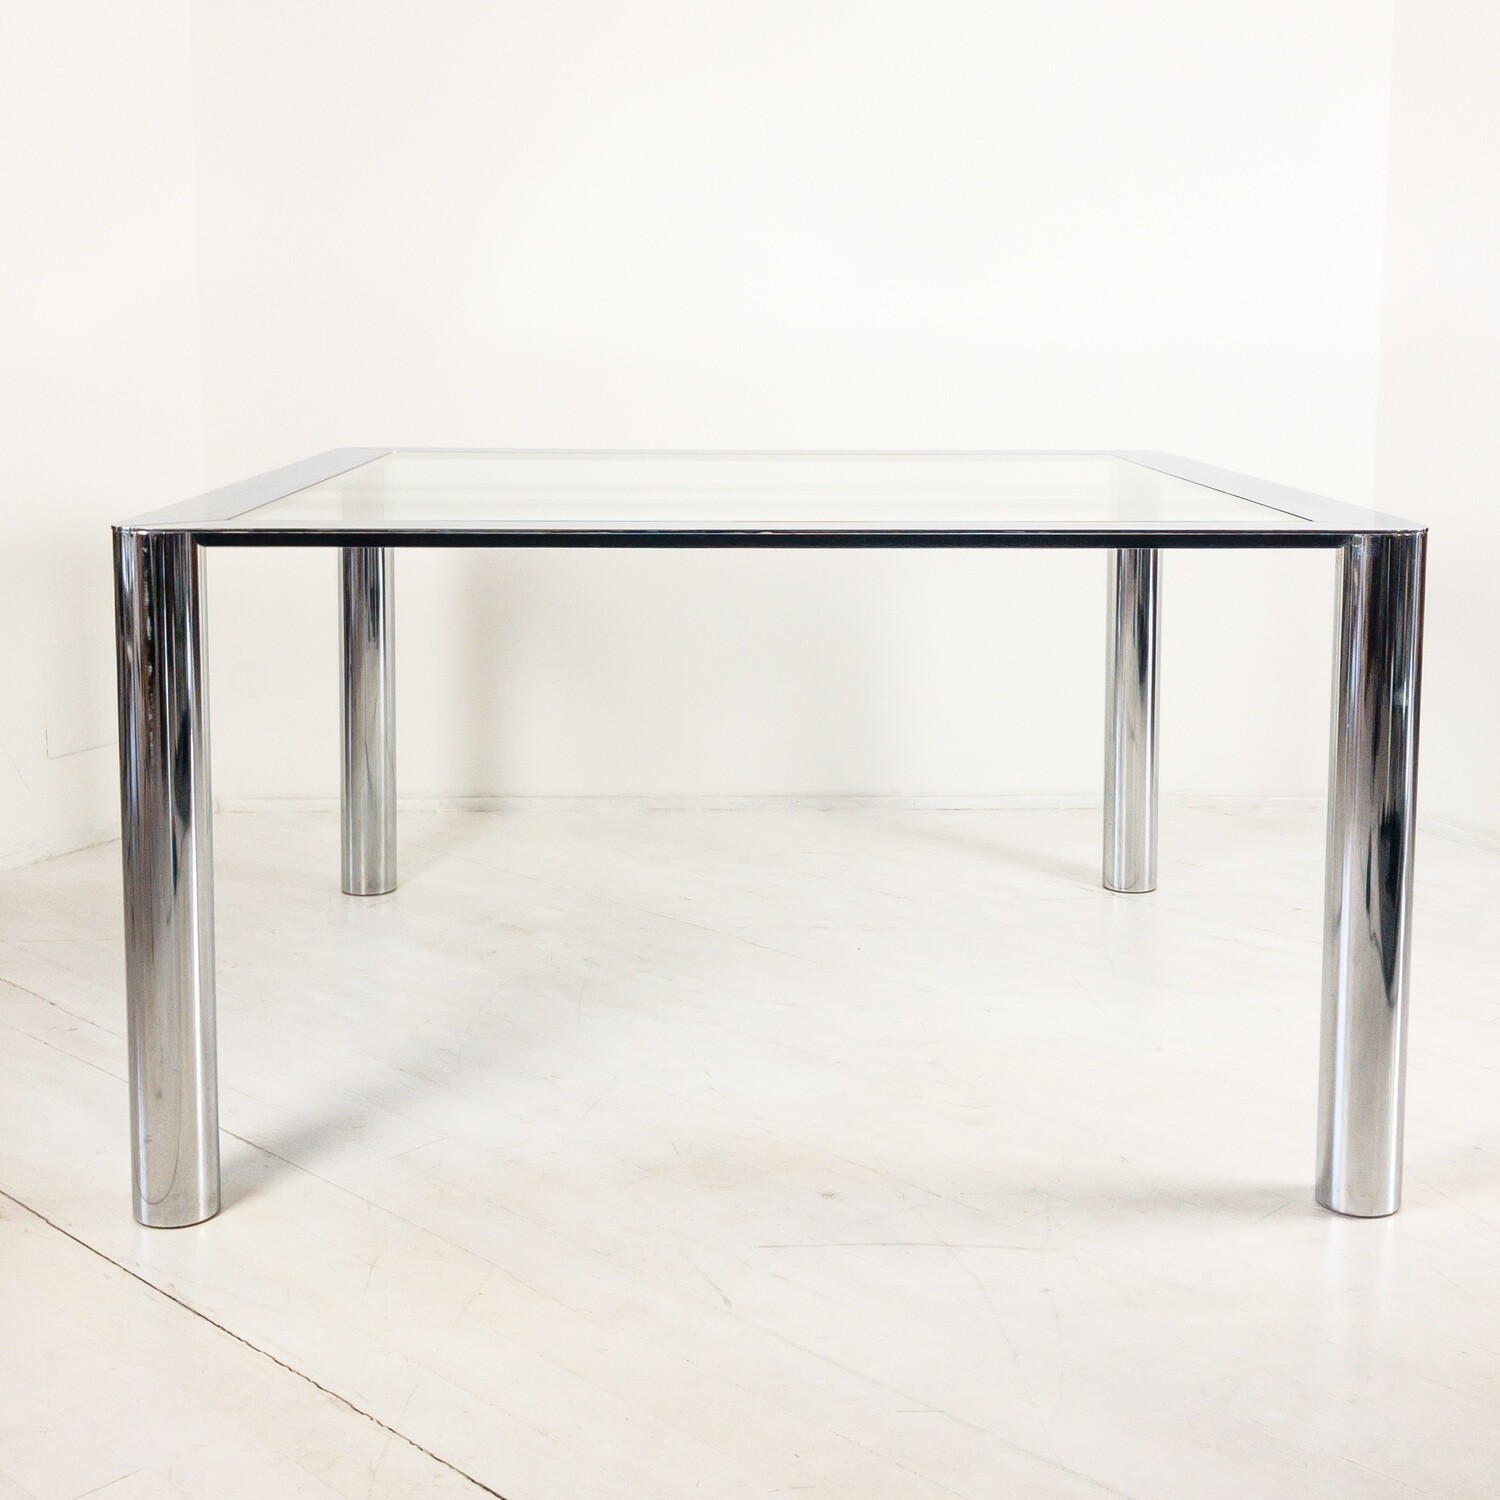 Dining table no. 912 by Sergio Mazza and Giuliana Gramigna for Cinova, 1969